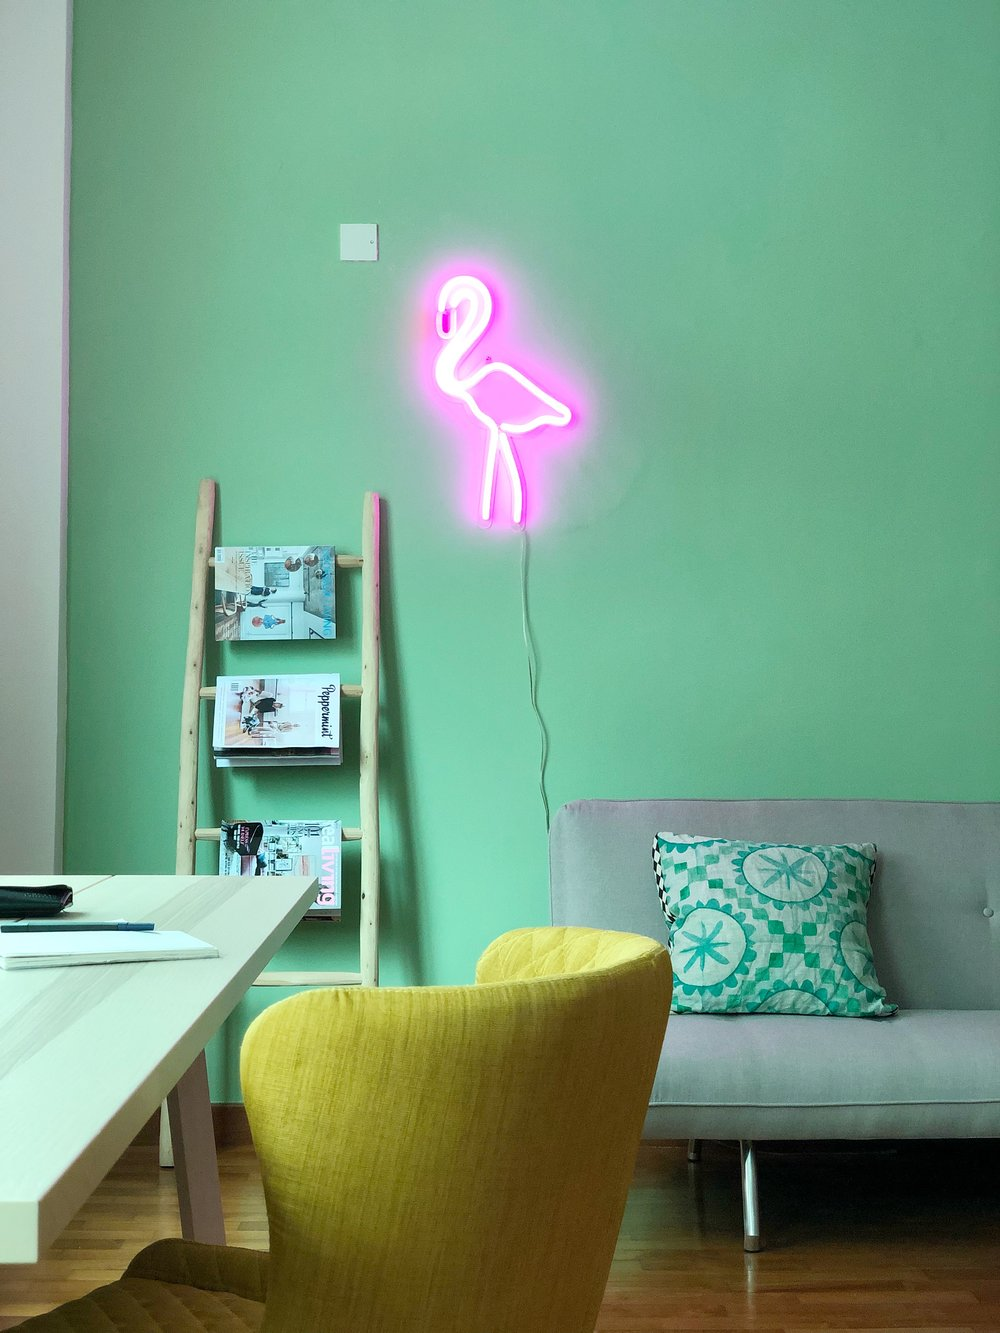 Funky Neon Flamingo Sign Green Wall